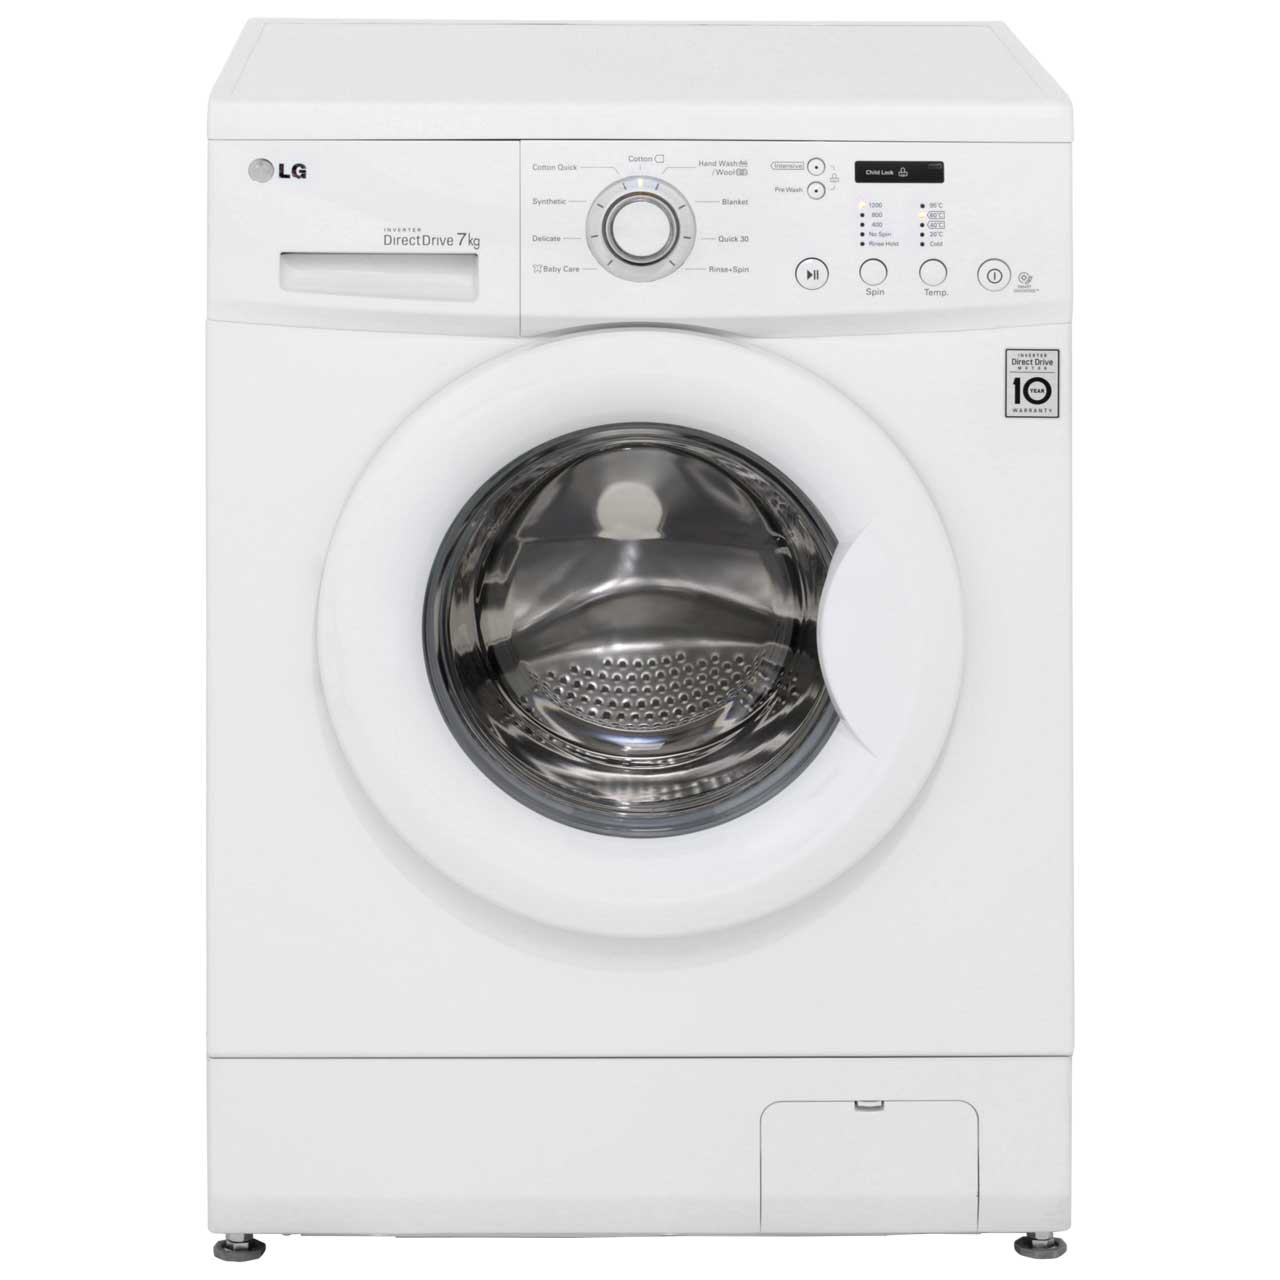 LG F12C3QD Free Standing Washing Machine in White